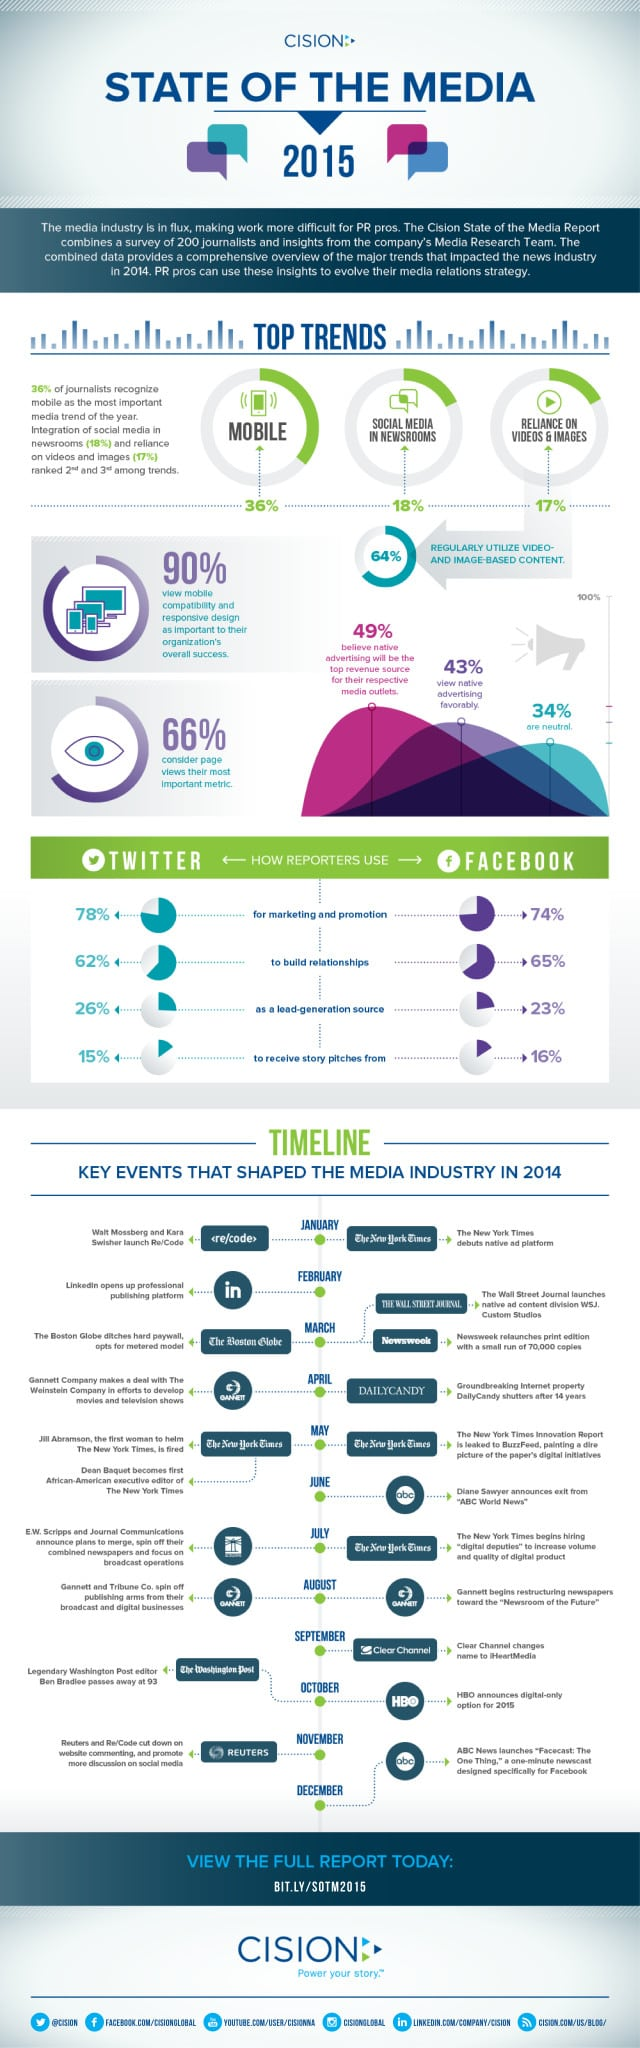 State of the Media Infographic